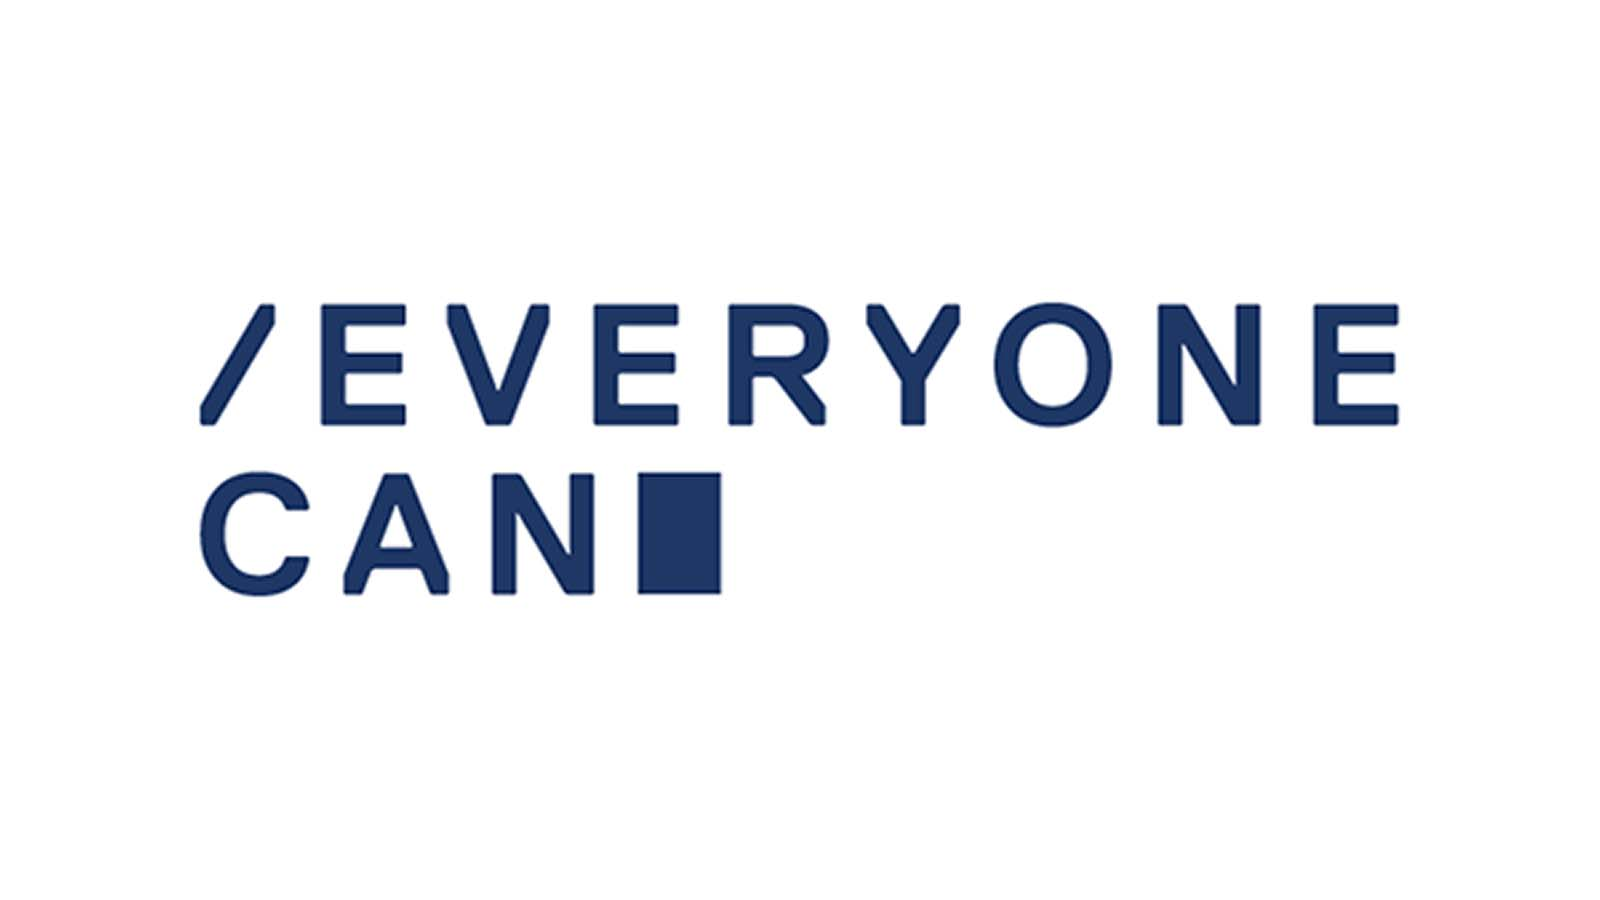 The Everyone Can Logo